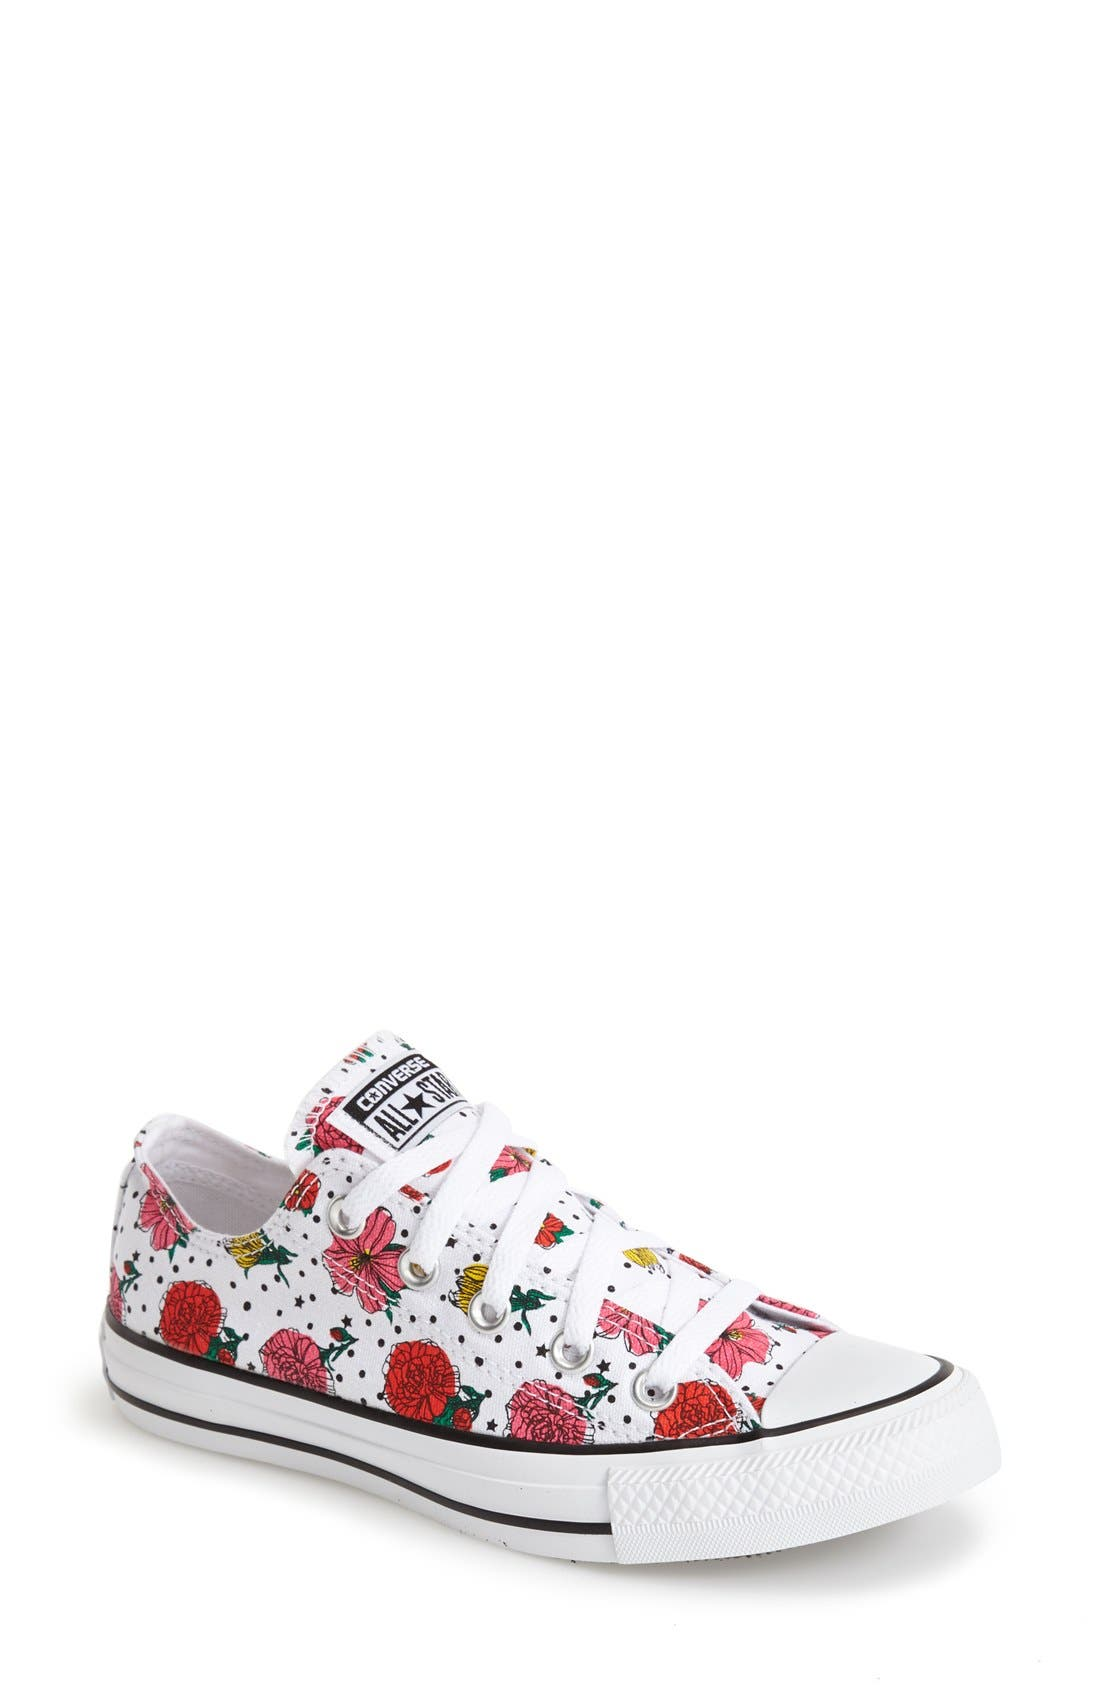 CONVERSE,                             Chuck Taylor<sup>®</sup> All Star<sup>®</sup> Floral Polka Dot Low Top Sneaker,                             Main thumbnail 1, color,                             007